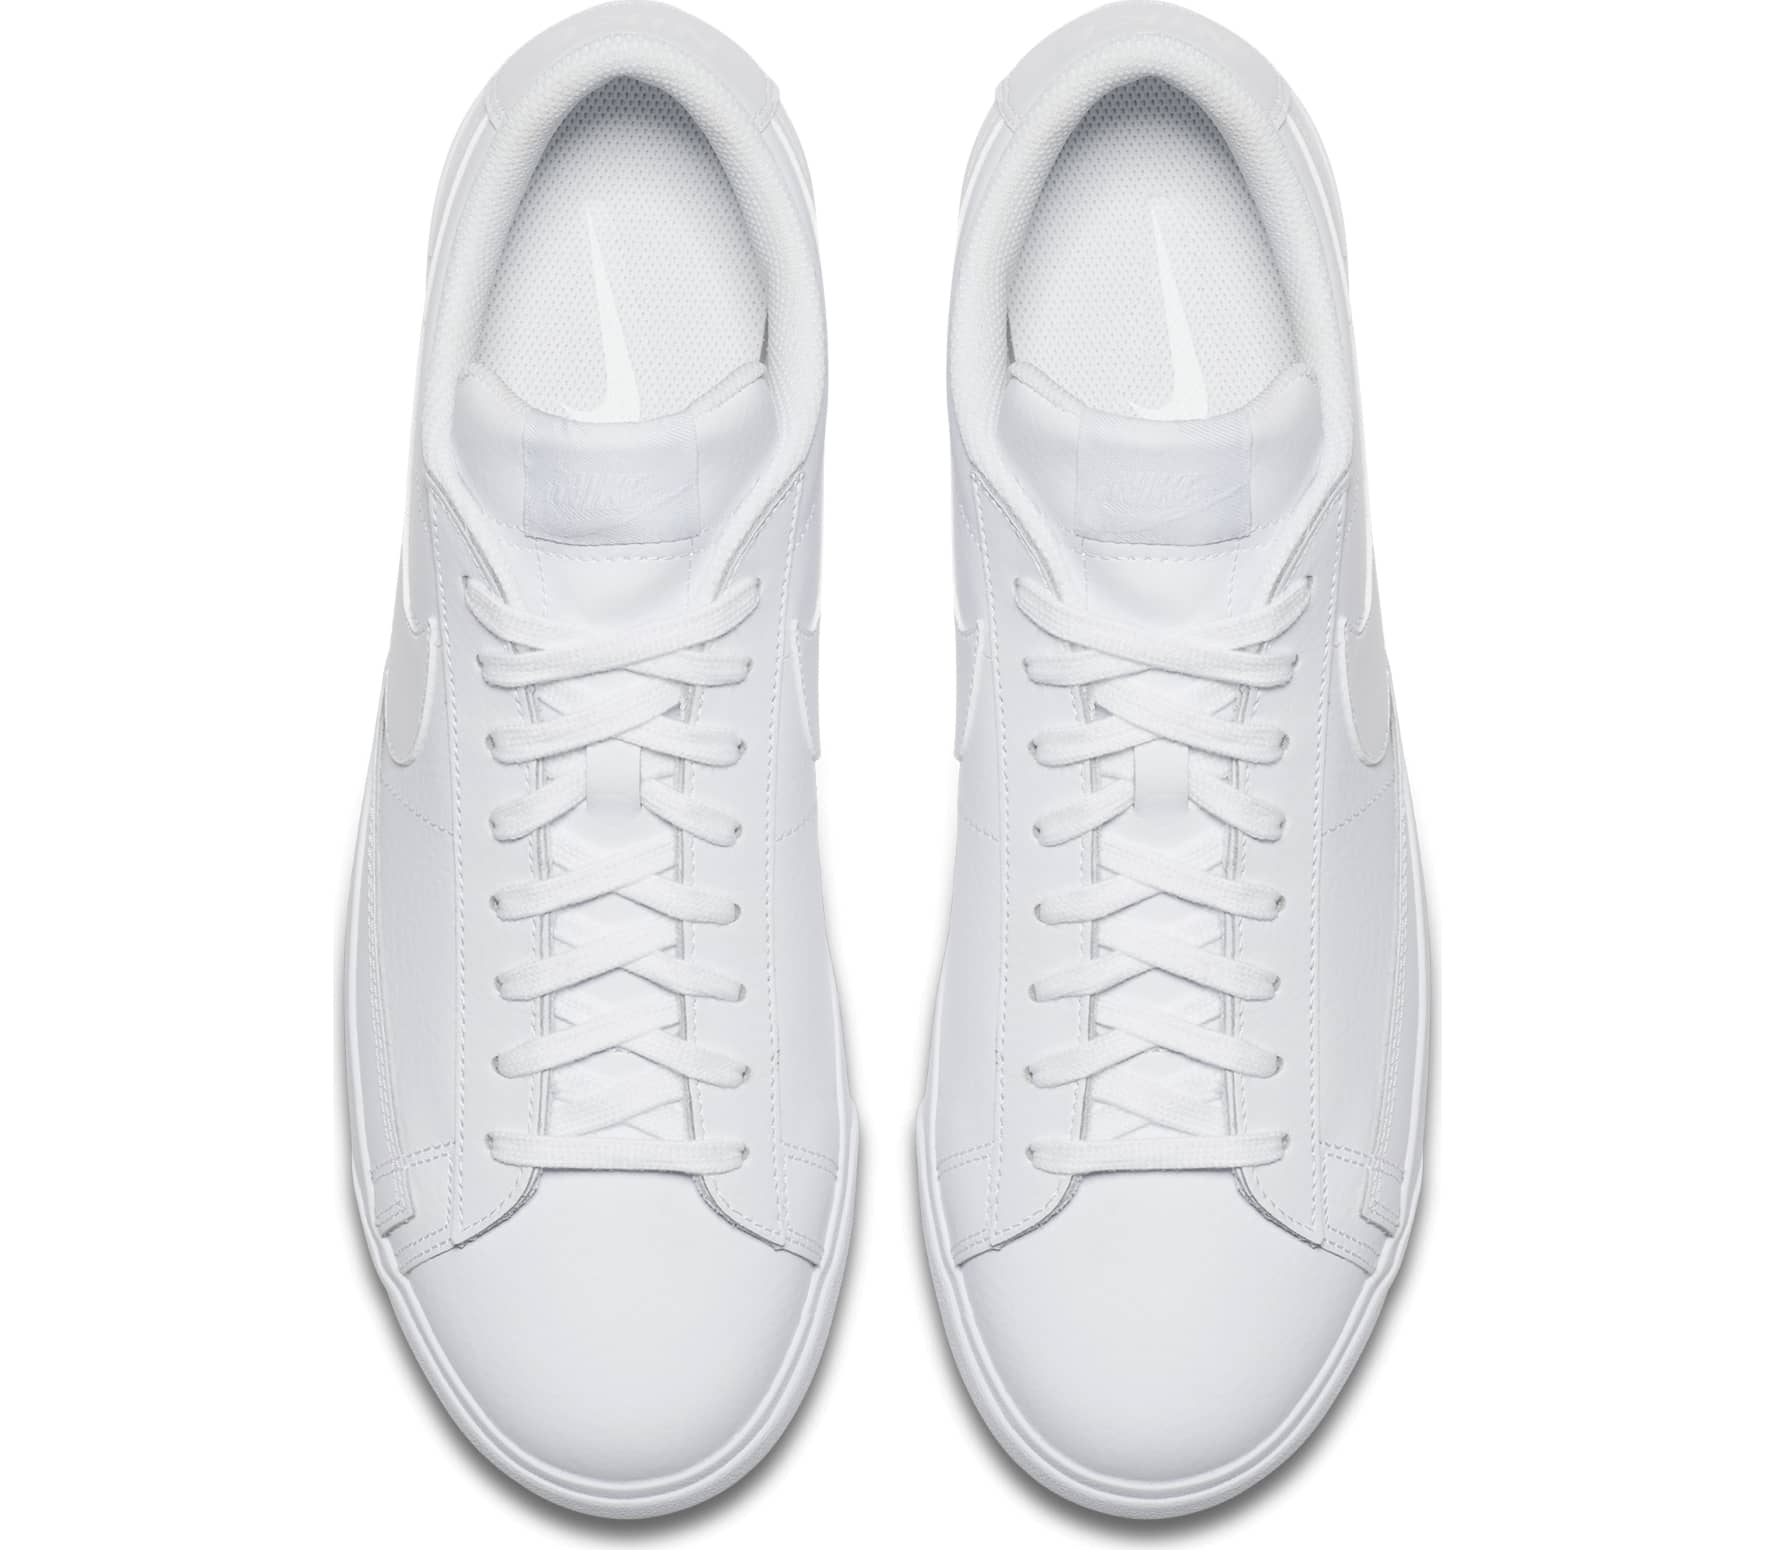 meet f2fa0 ae0b1 Nike - BLAZER LOW LE mens sneaker (white)